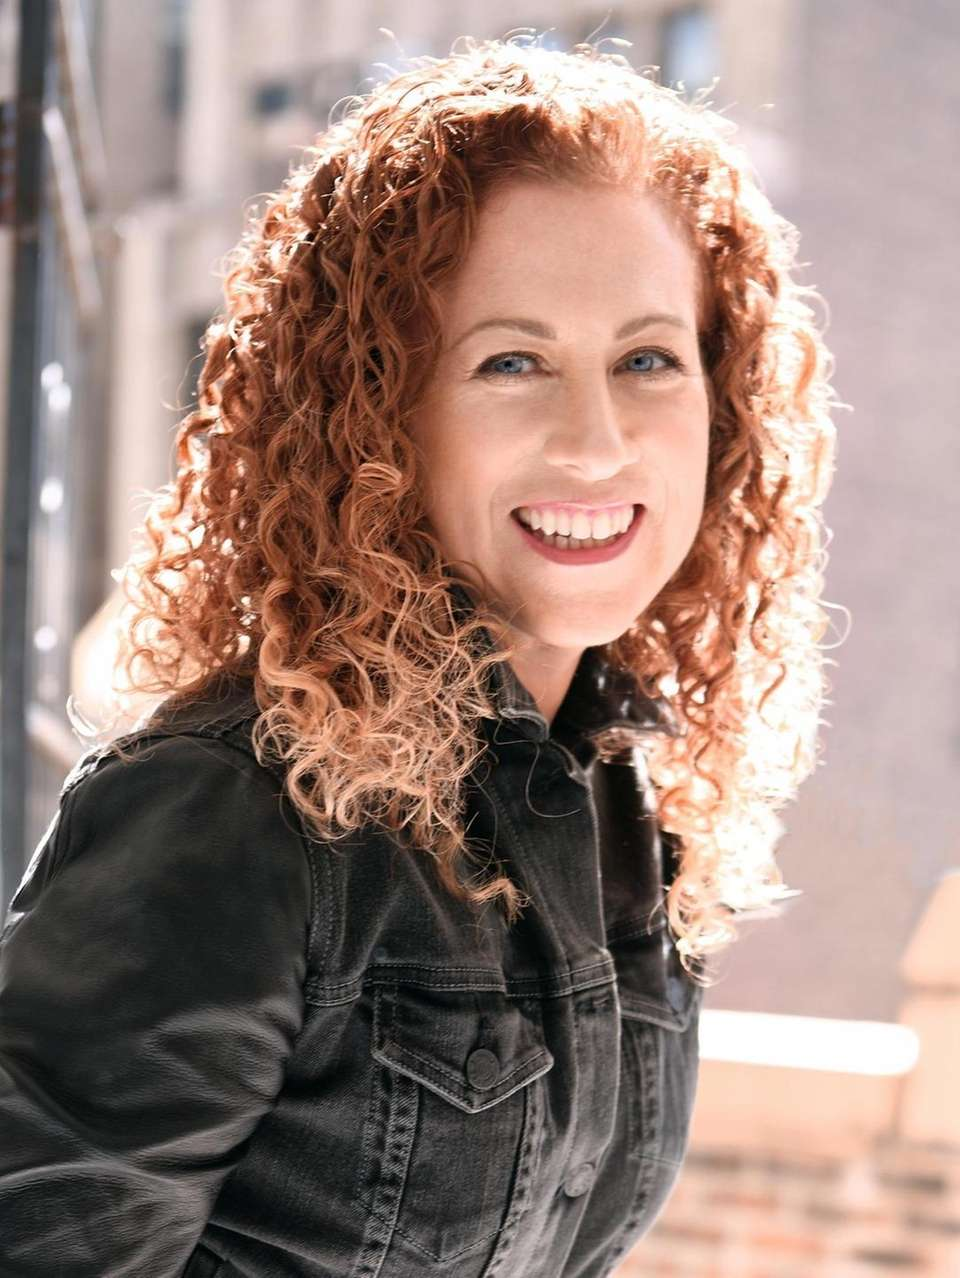 Author Jodi Picoult grew up in Nesconset and